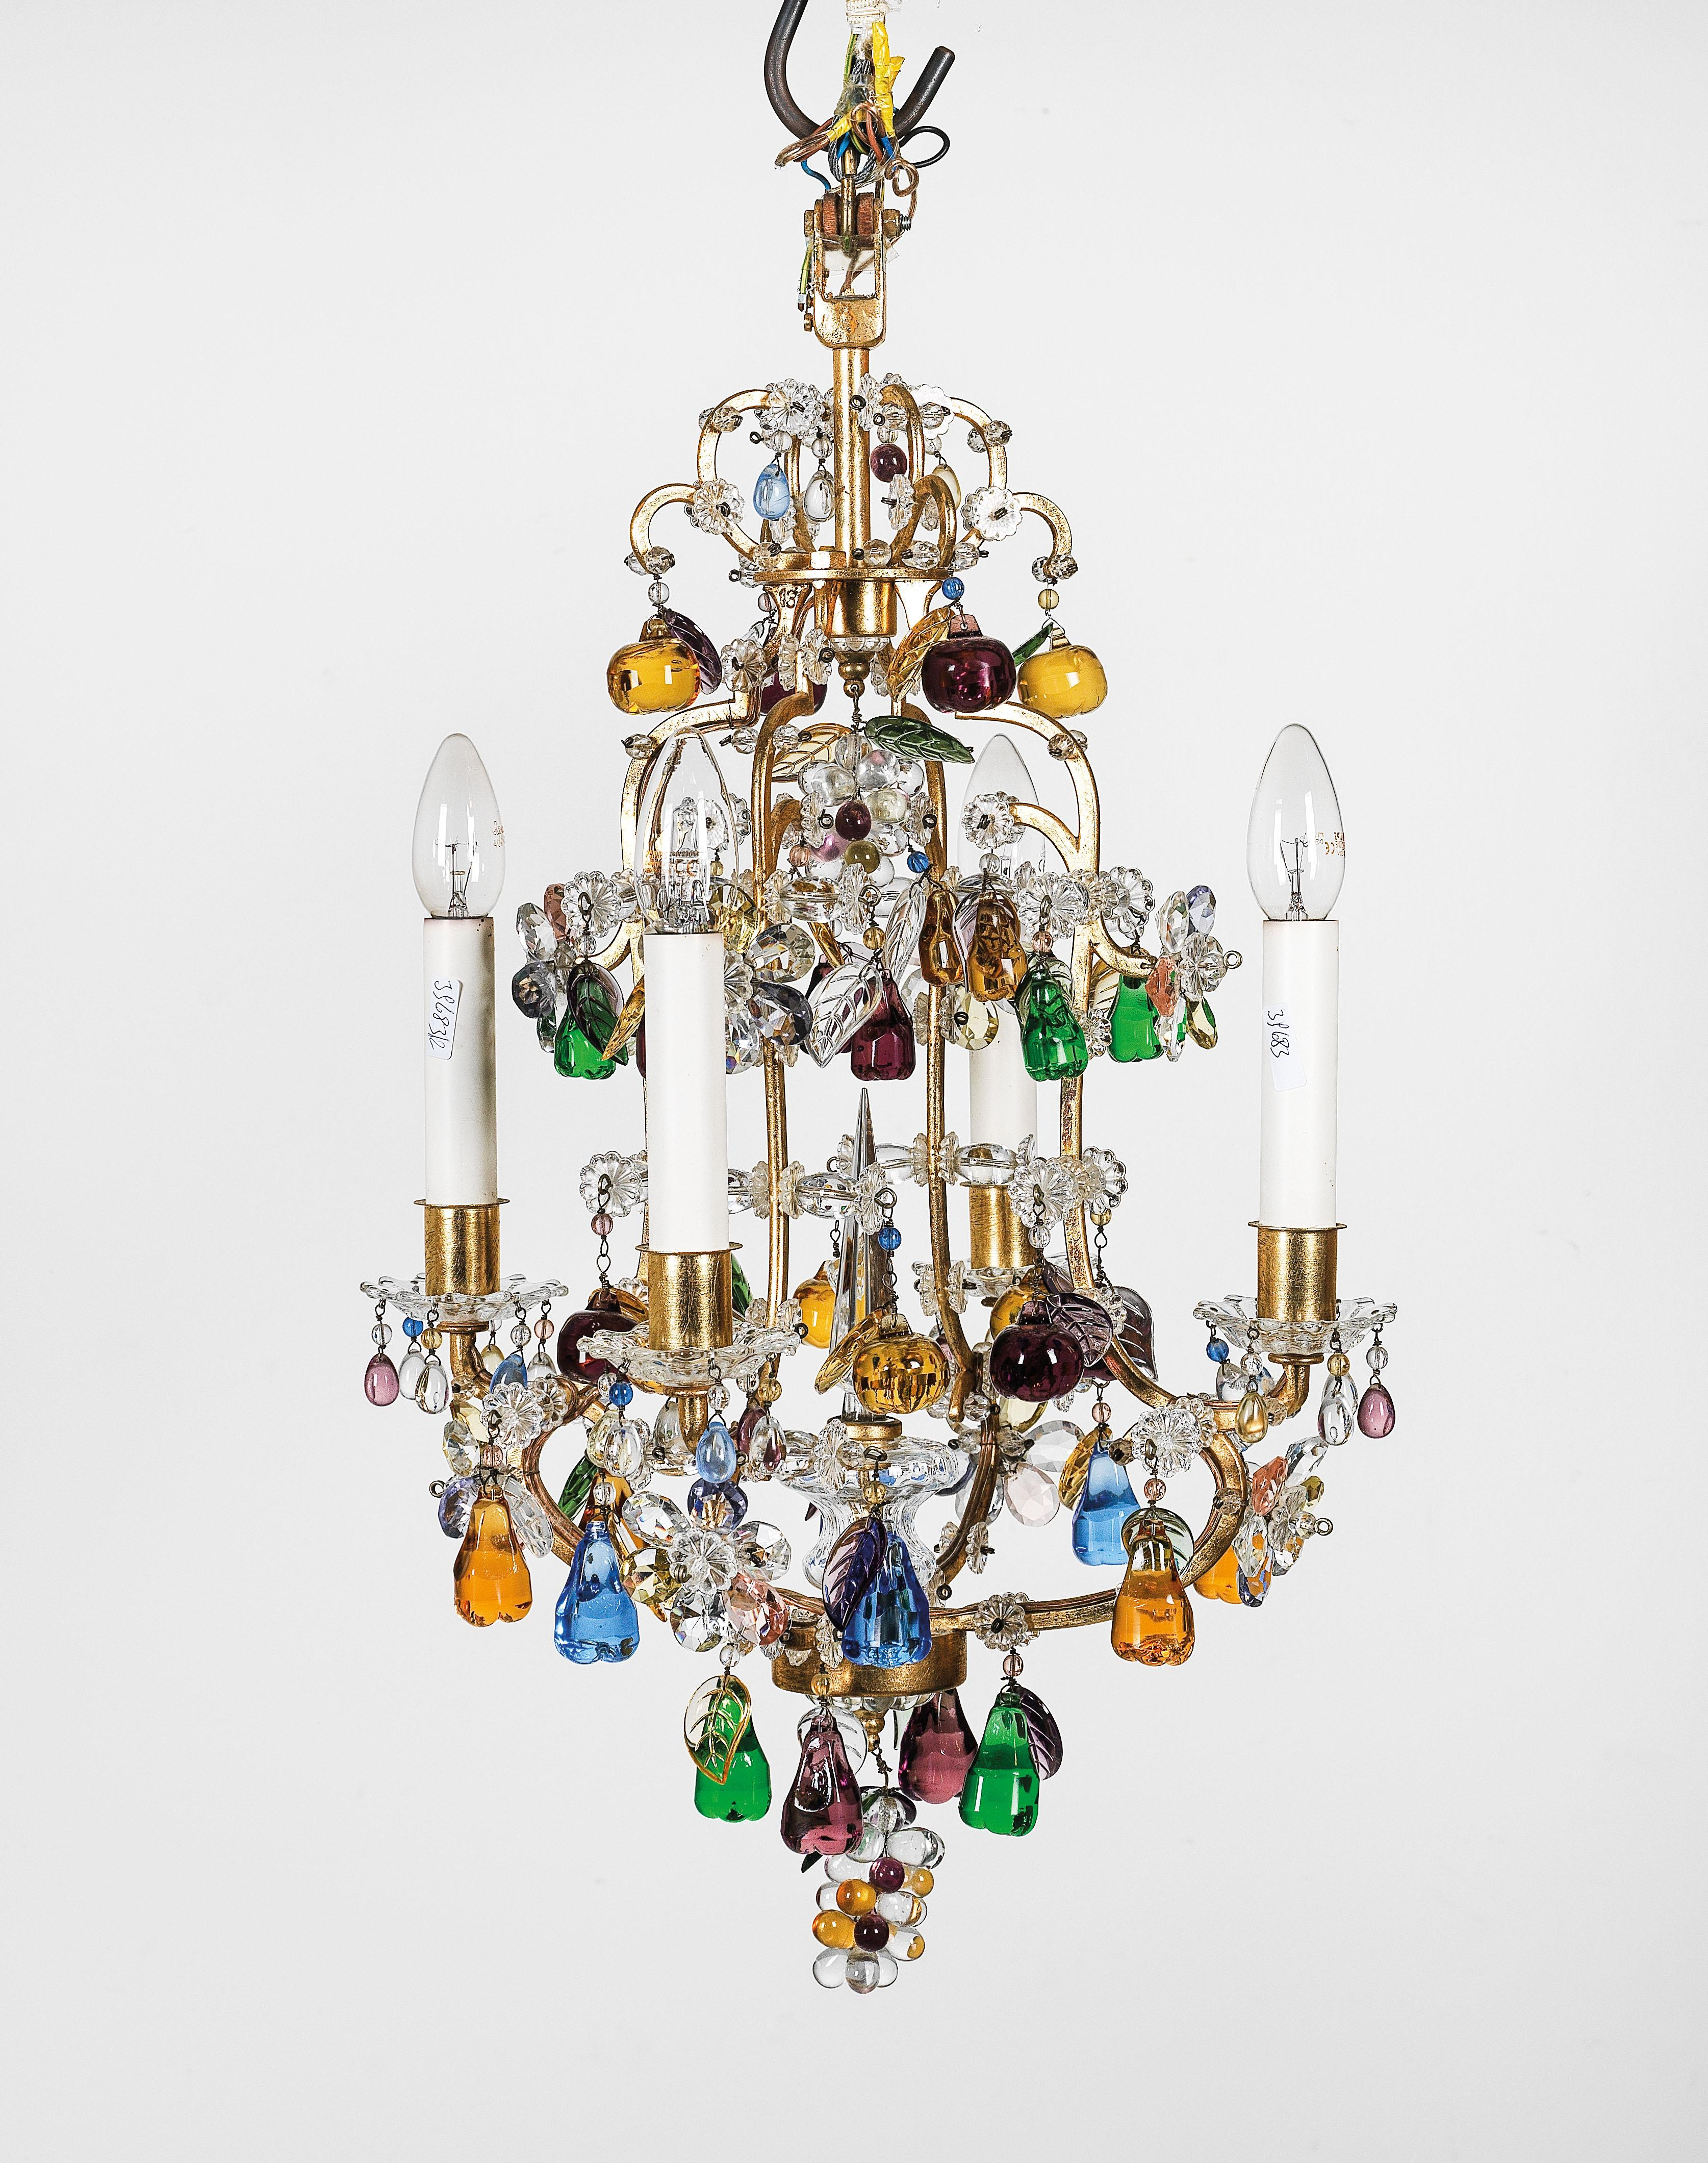 A Small Glass Chandelier Furniture And Decorative Art 2019 09 23 Realized Price Eur 1 280 Dorotheum